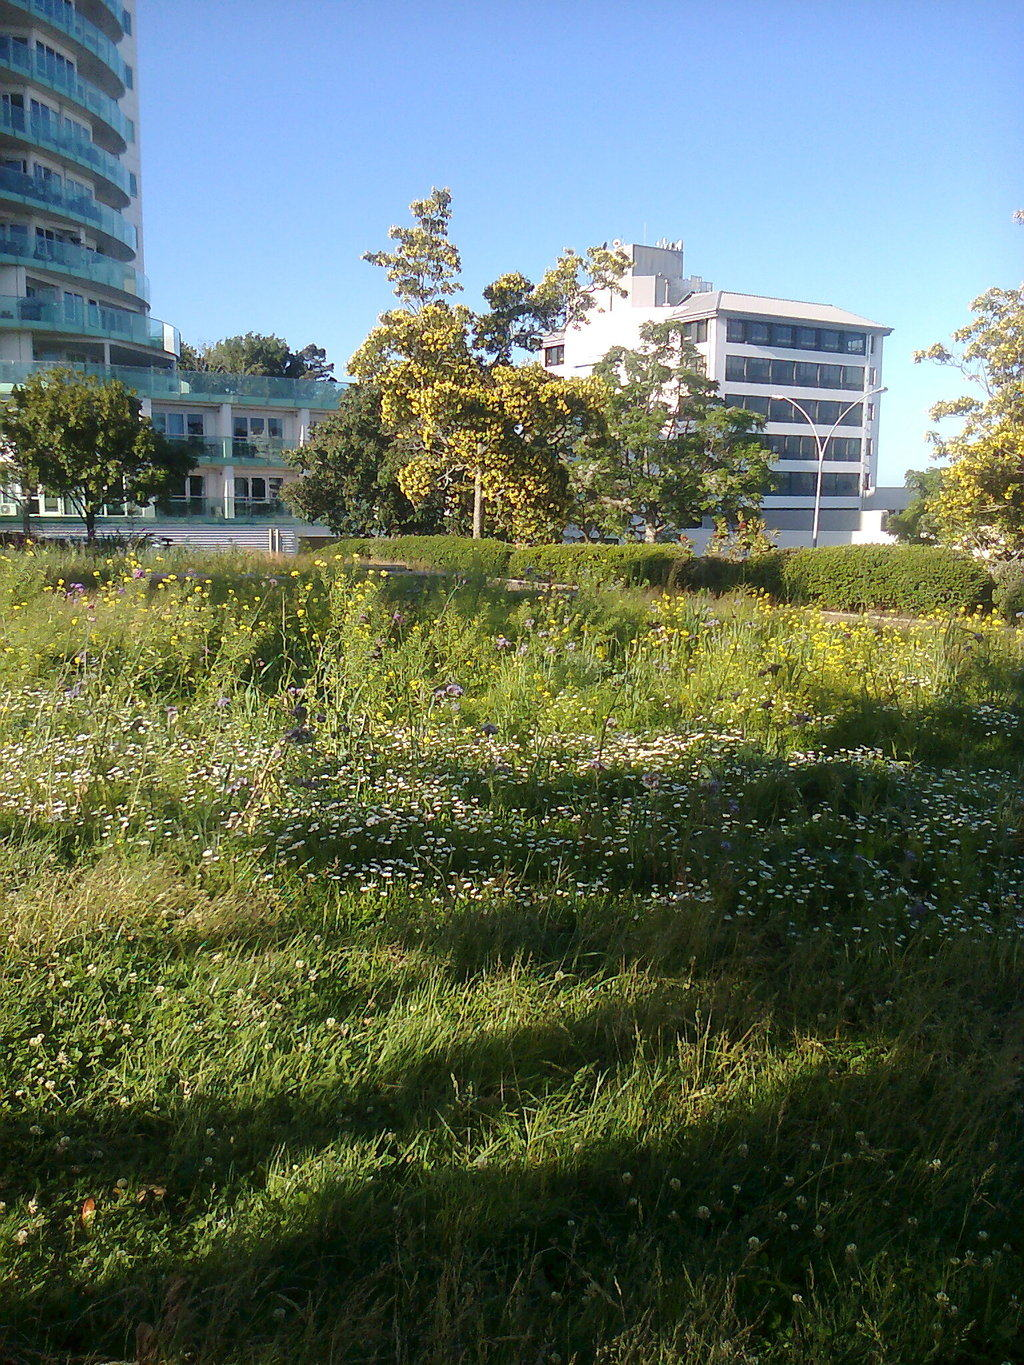 Rural sward in Downtown Tauranga